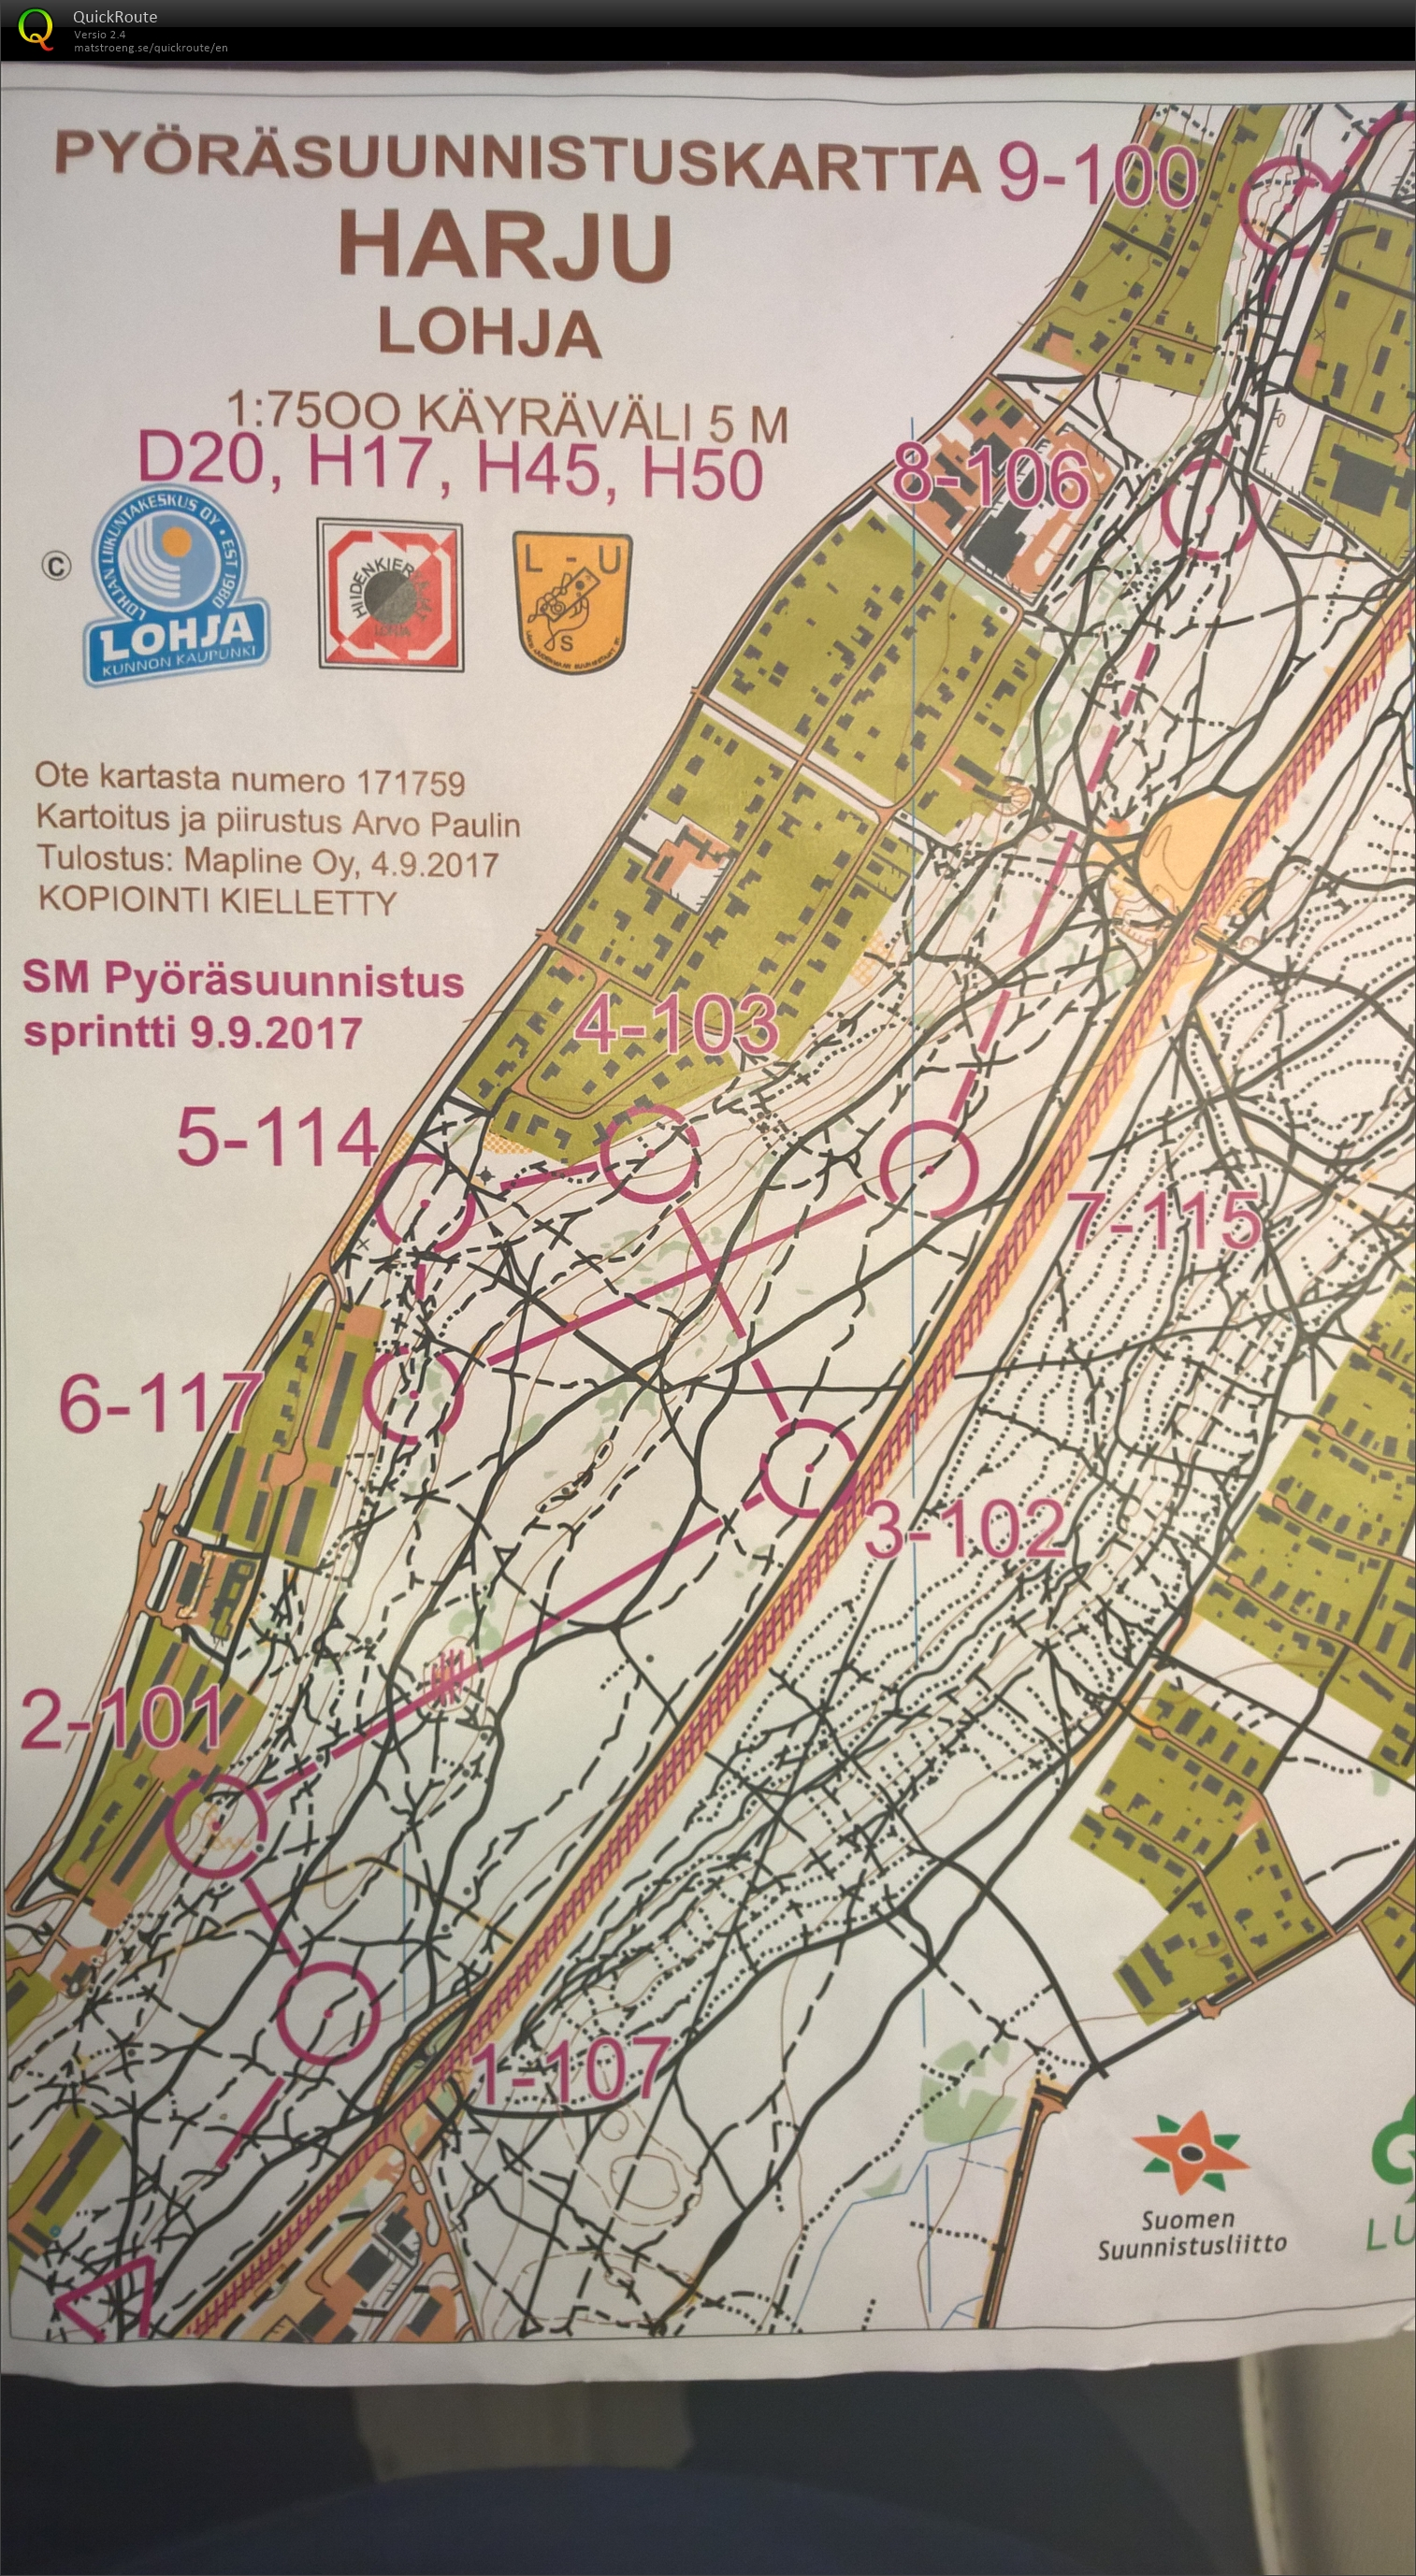 SM sprintti pysu September 9th 2017 Orienteering Map from Janne